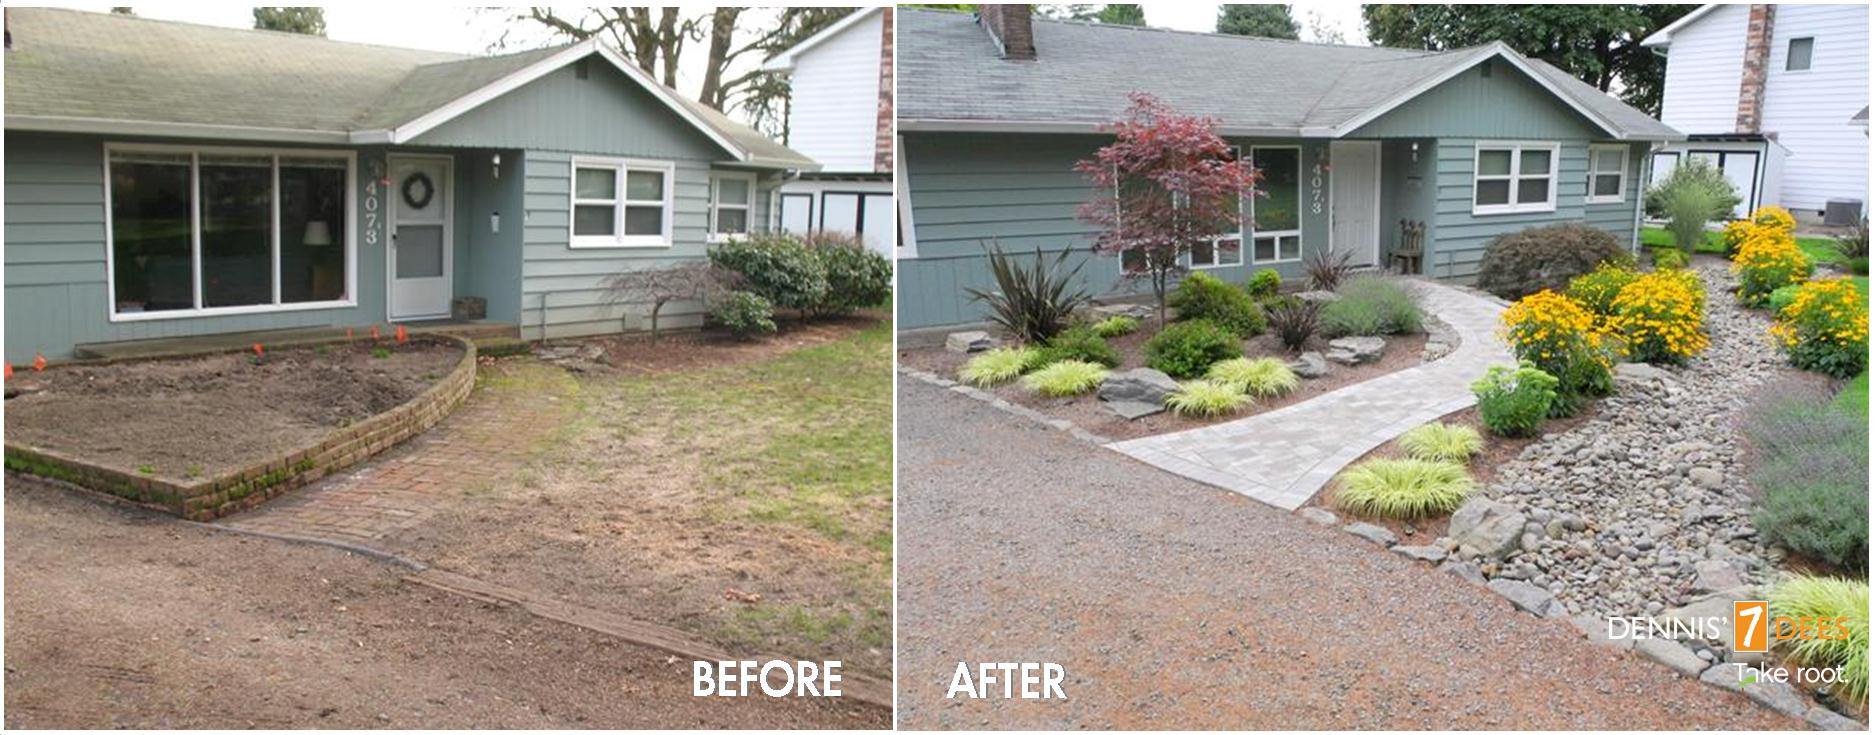 before and after pictures of front yard landscaping